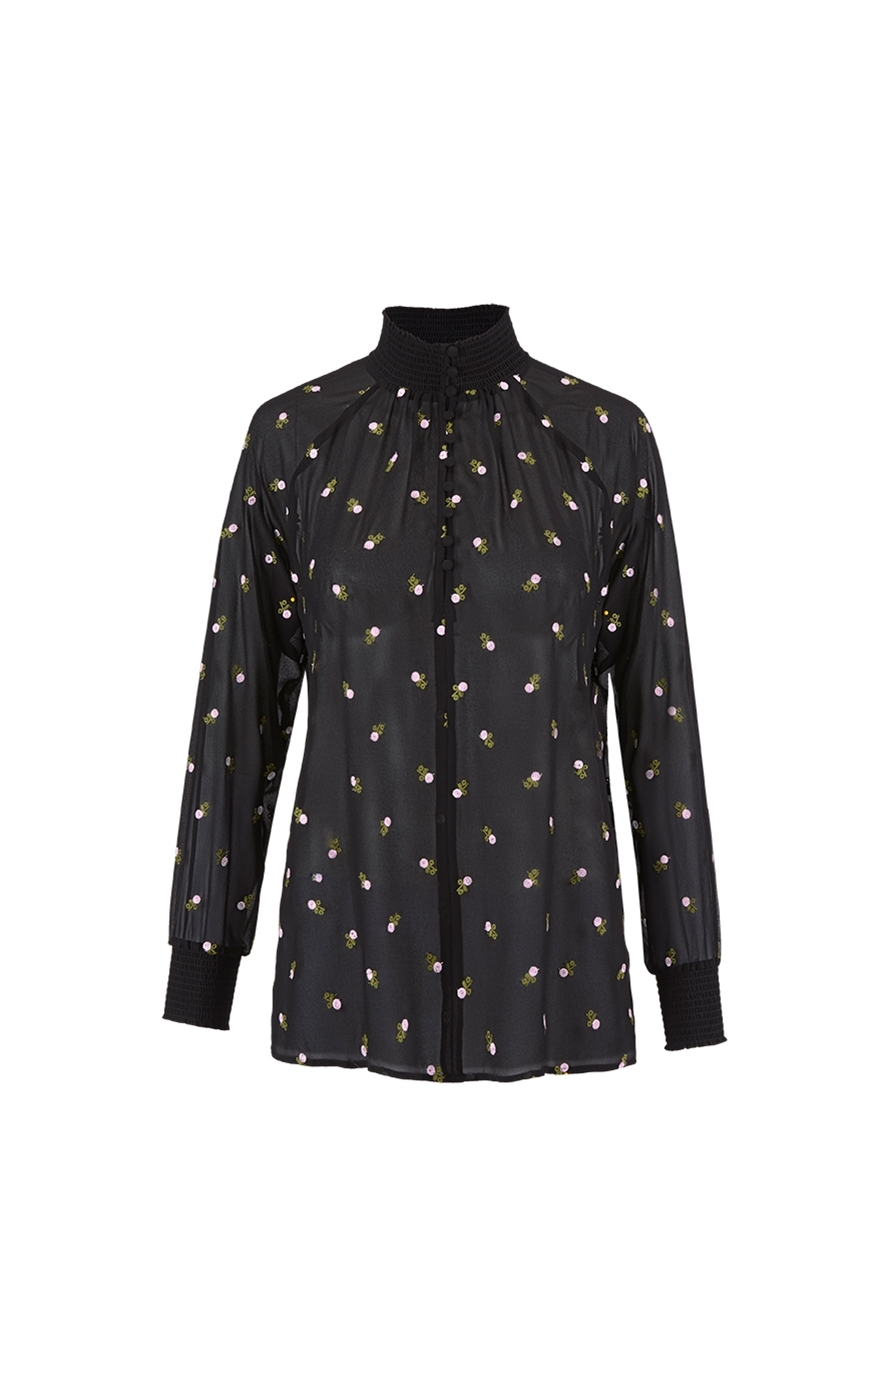 cabi's Embroidered Blouse